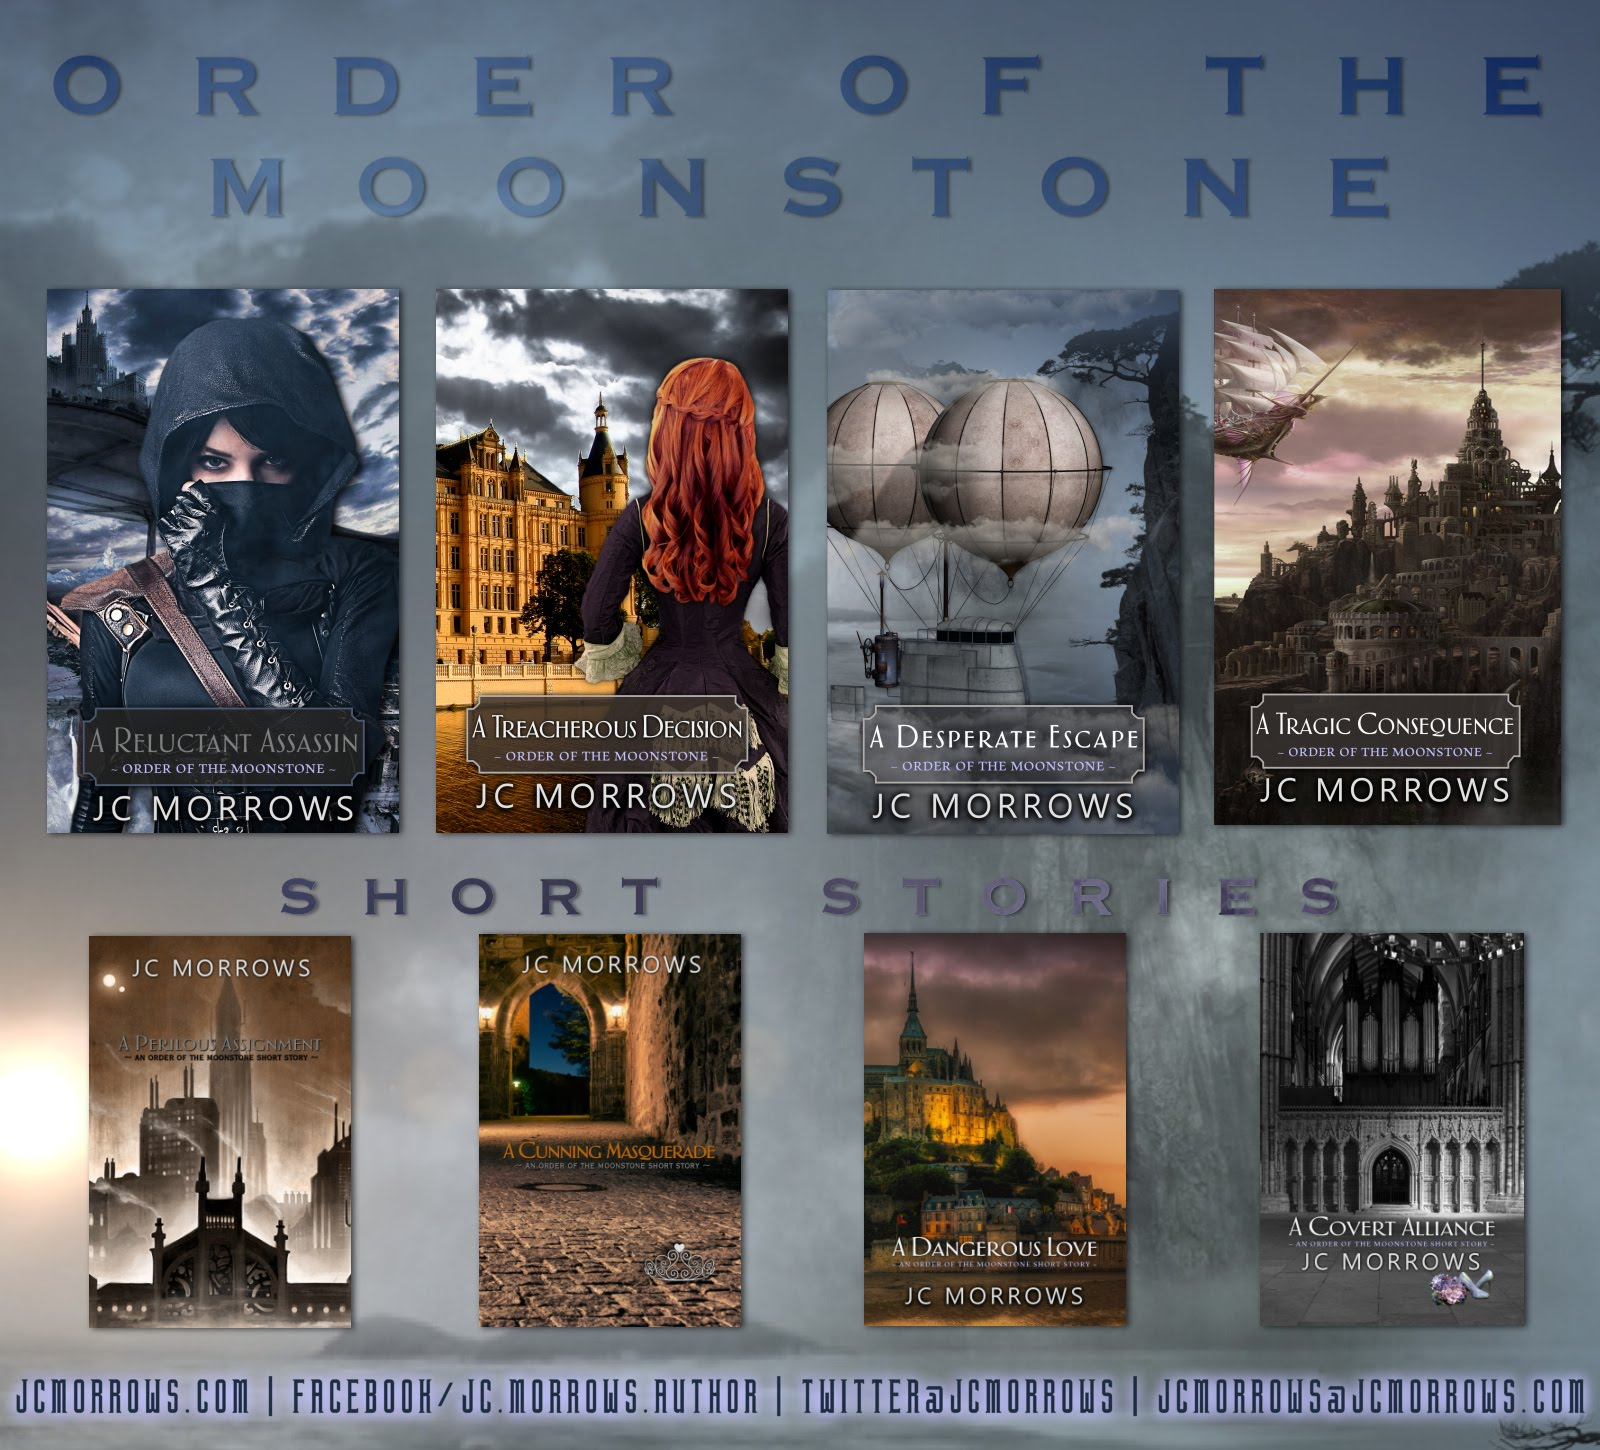 Order of the Moonstone series